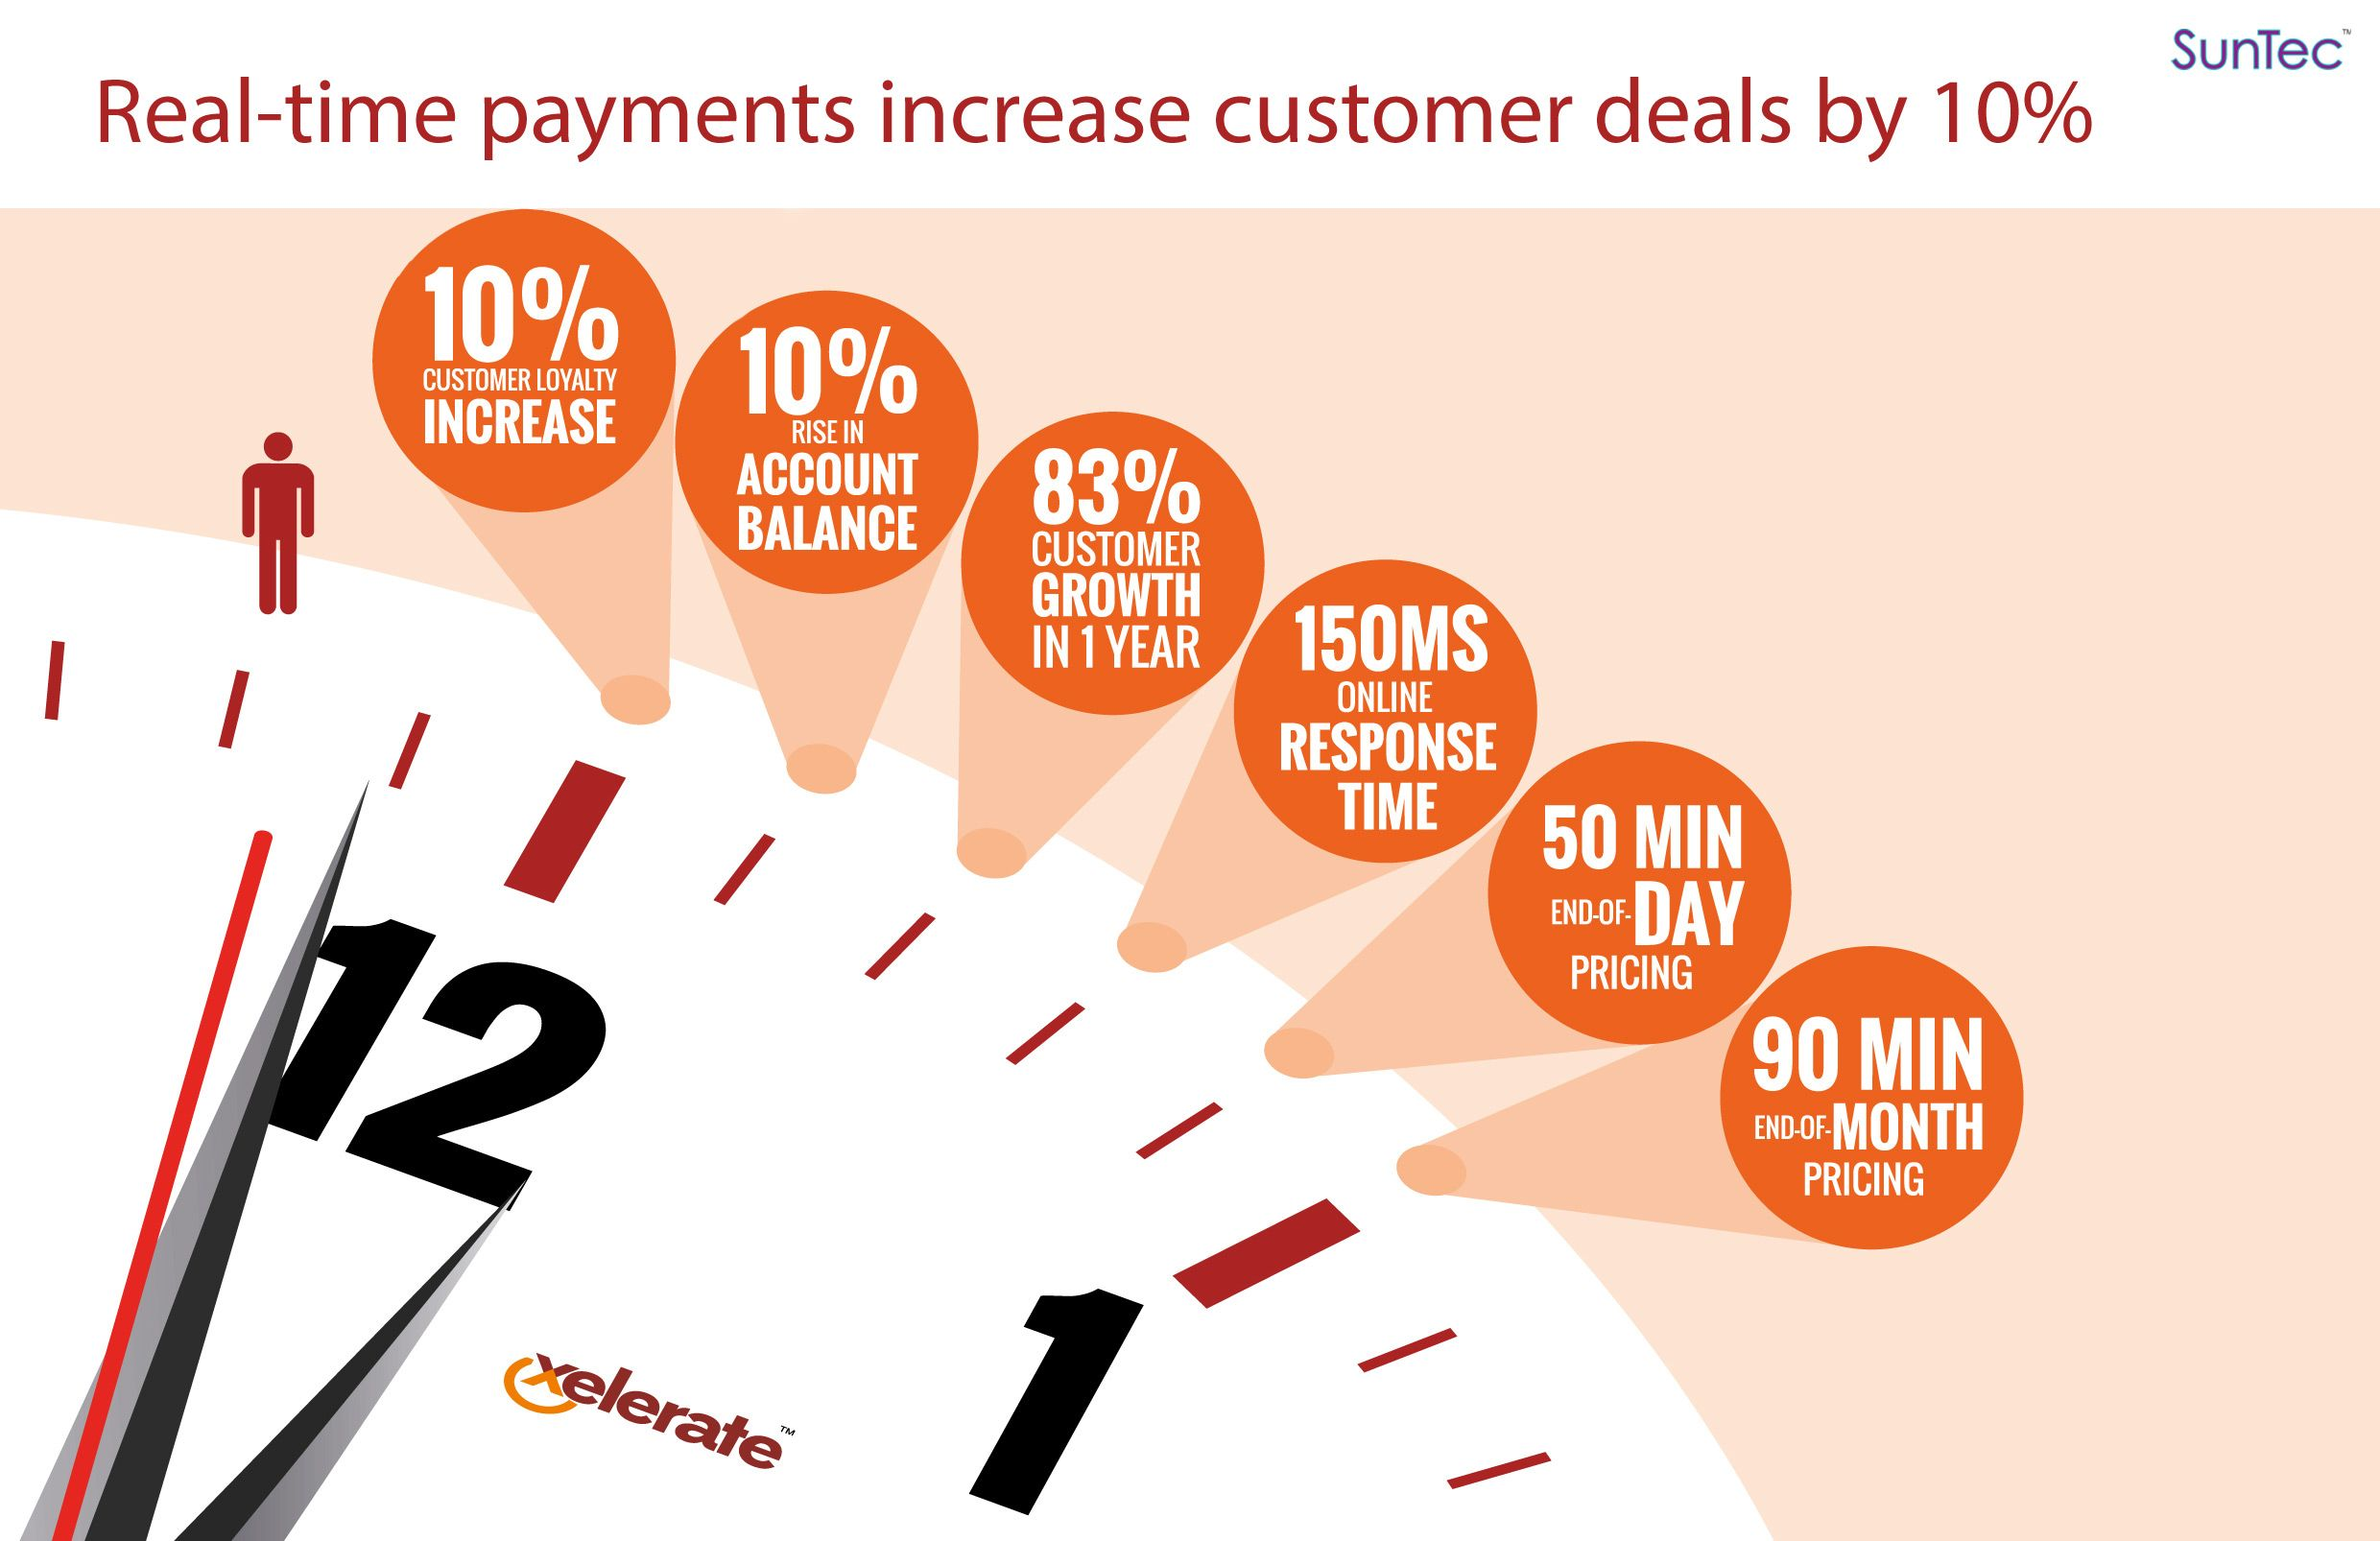 Using Suntec S Xelerate Product Suite Real Time Payments